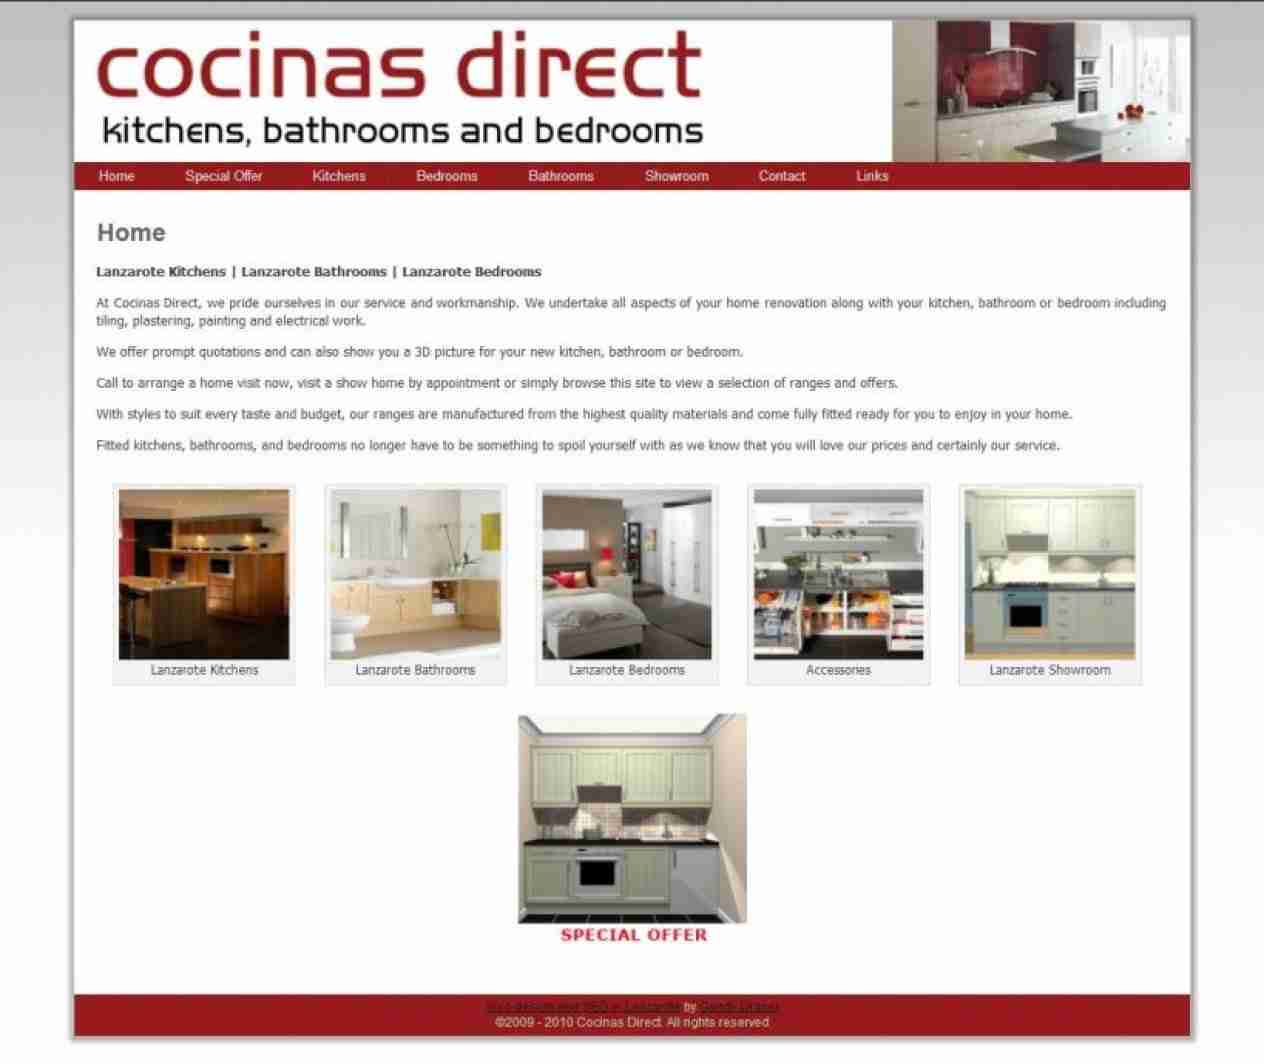 Cocinas Direct